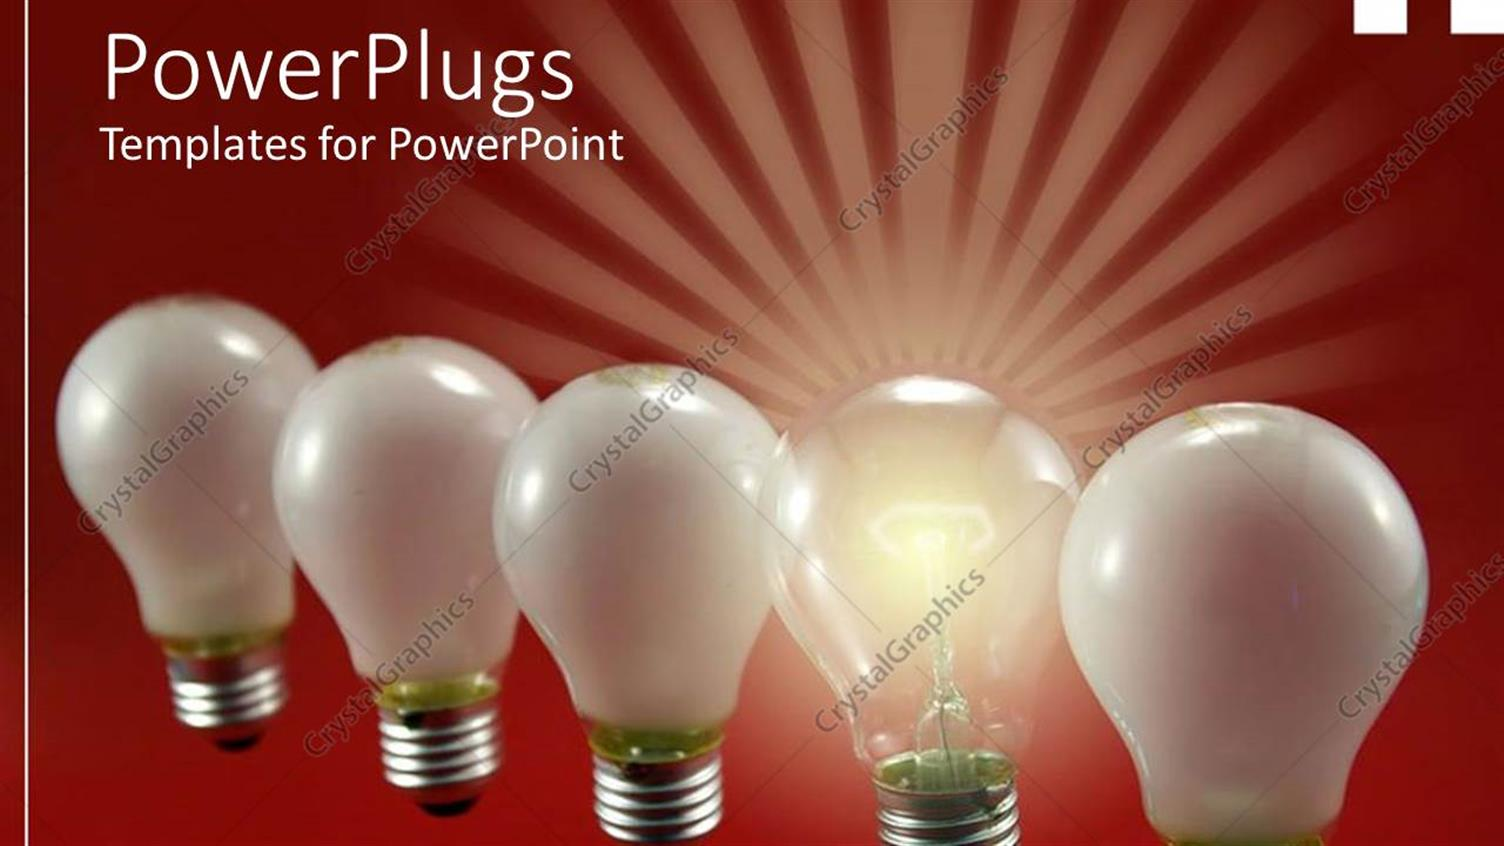 PowerPoint Template Displaying Row of Light Bulbs with One Distinct Bulb Glowing